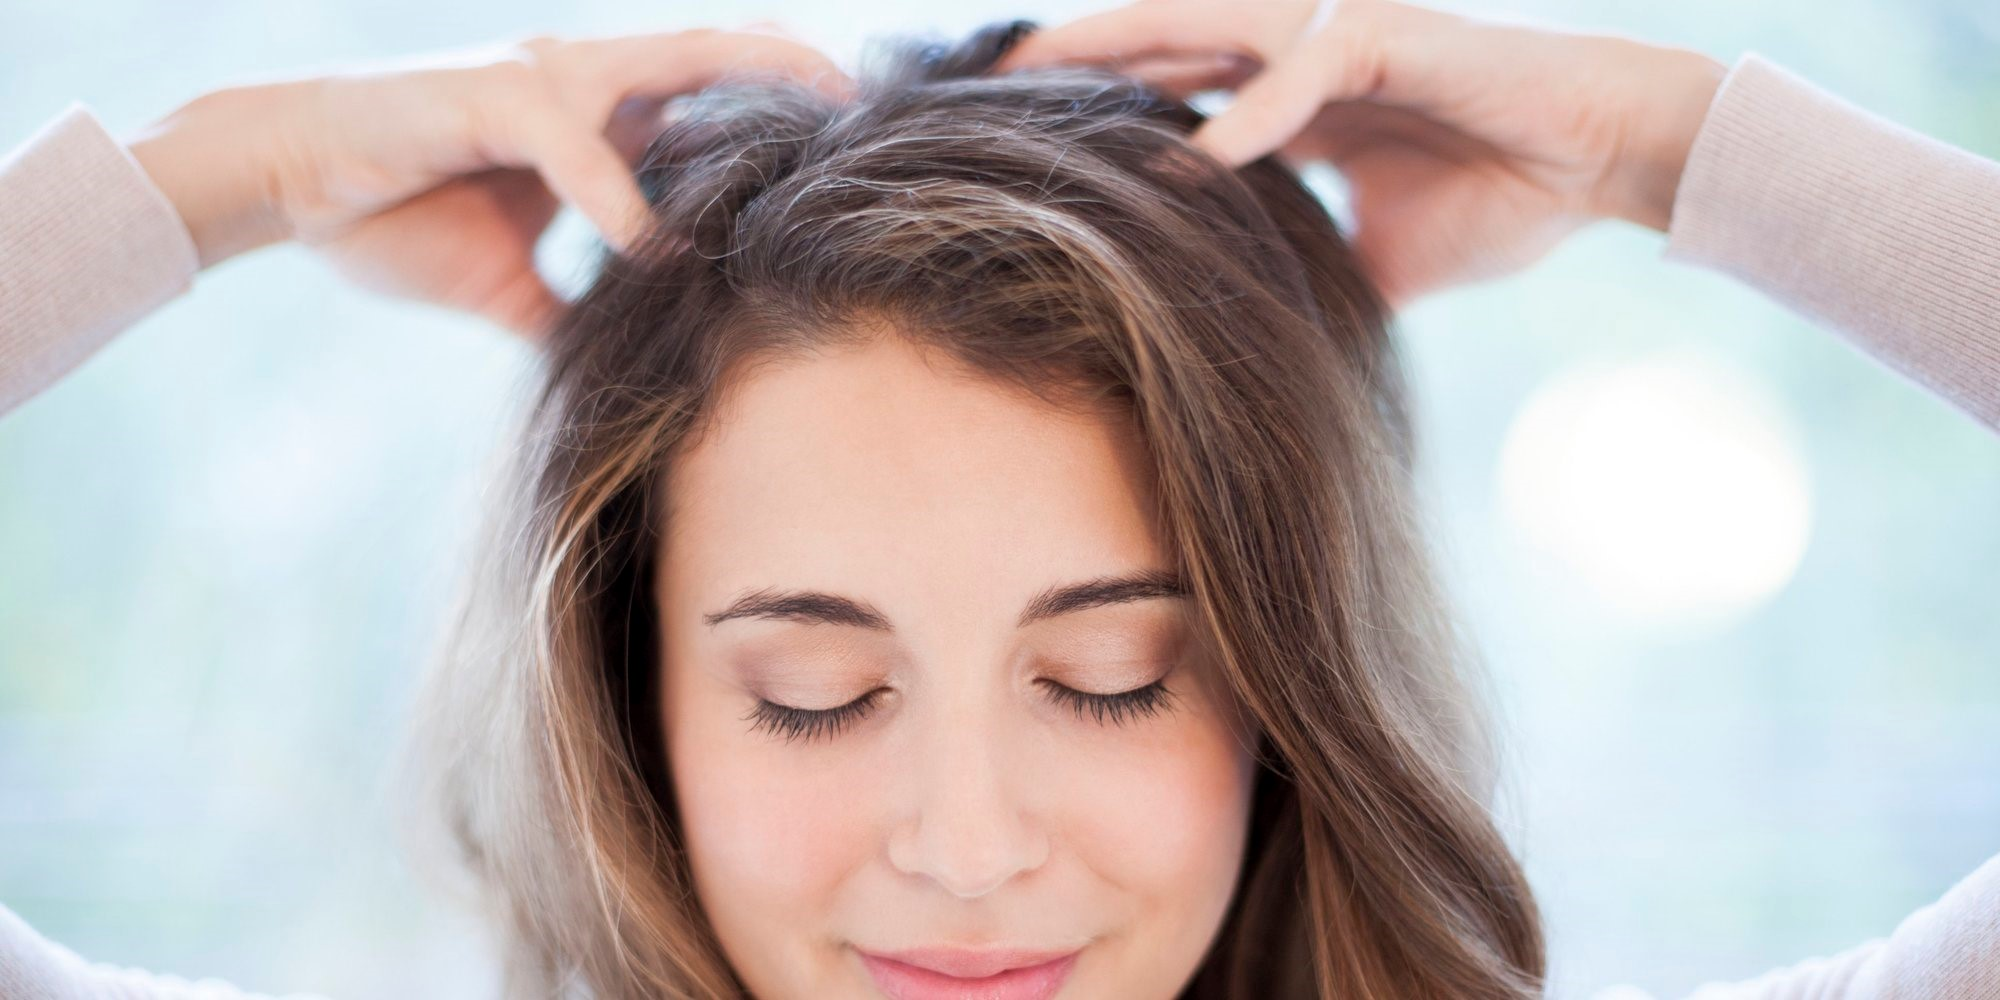 10 Wonderful Benefits of Scalp Massage